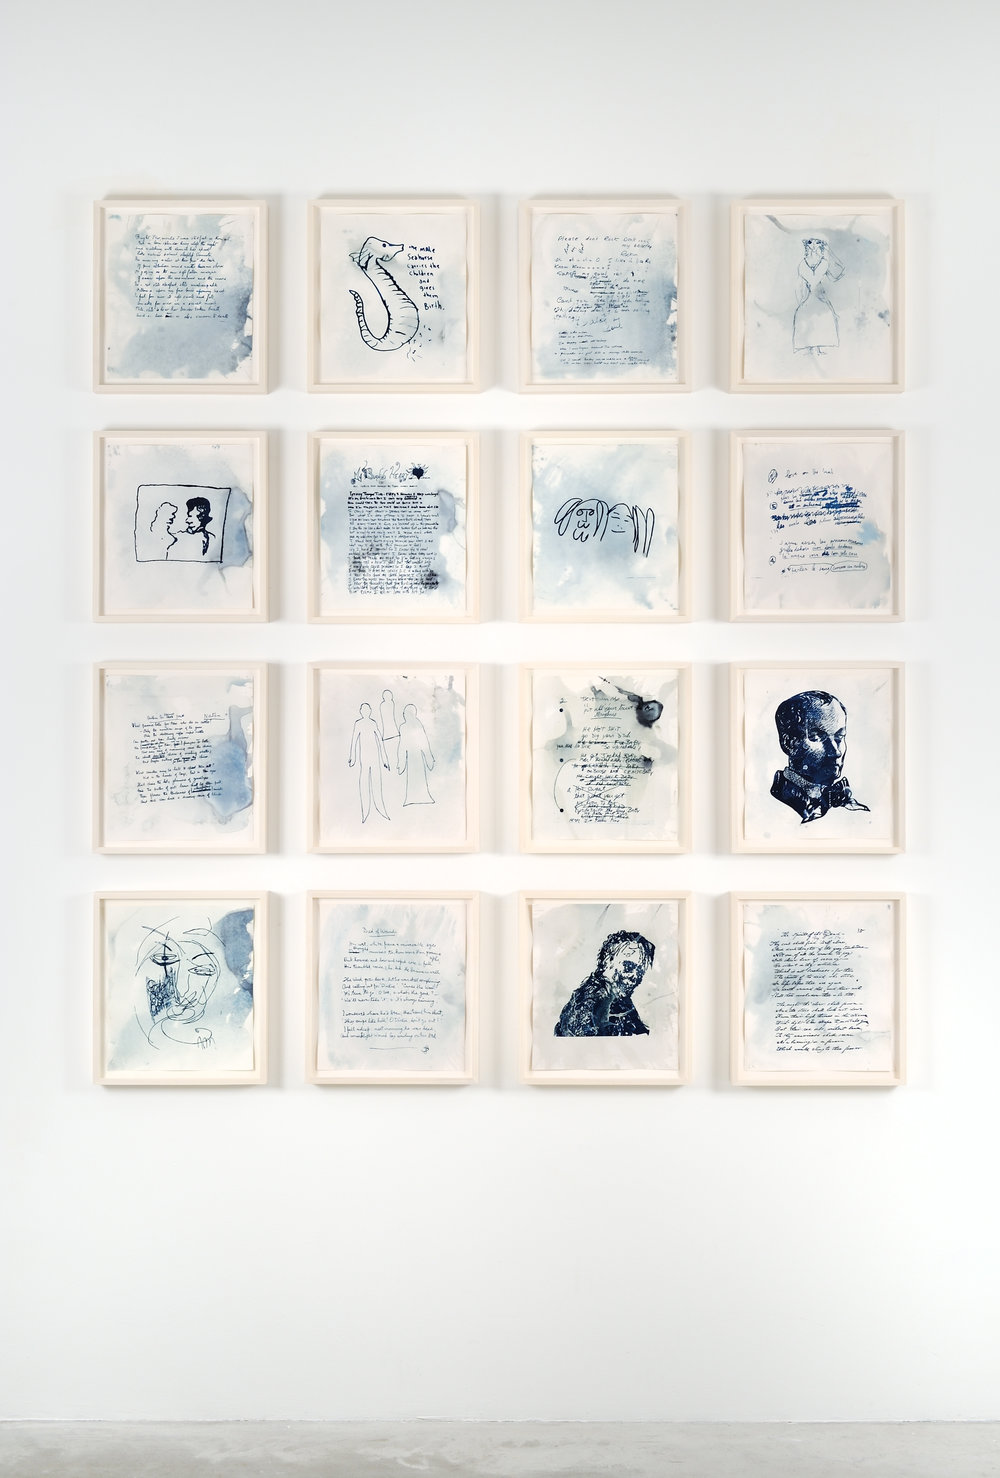 Life, Left to Struggle in The Sun, 2012 cyanotypes, ghost images of original drawings, handwritten lyrics, and poems by now deceased writers, pop stars and poets, sunlight, chlorophyll, ocean water, watercolor paper 38 x 34,3 cm - 15 x 13 1/2 inches (each)